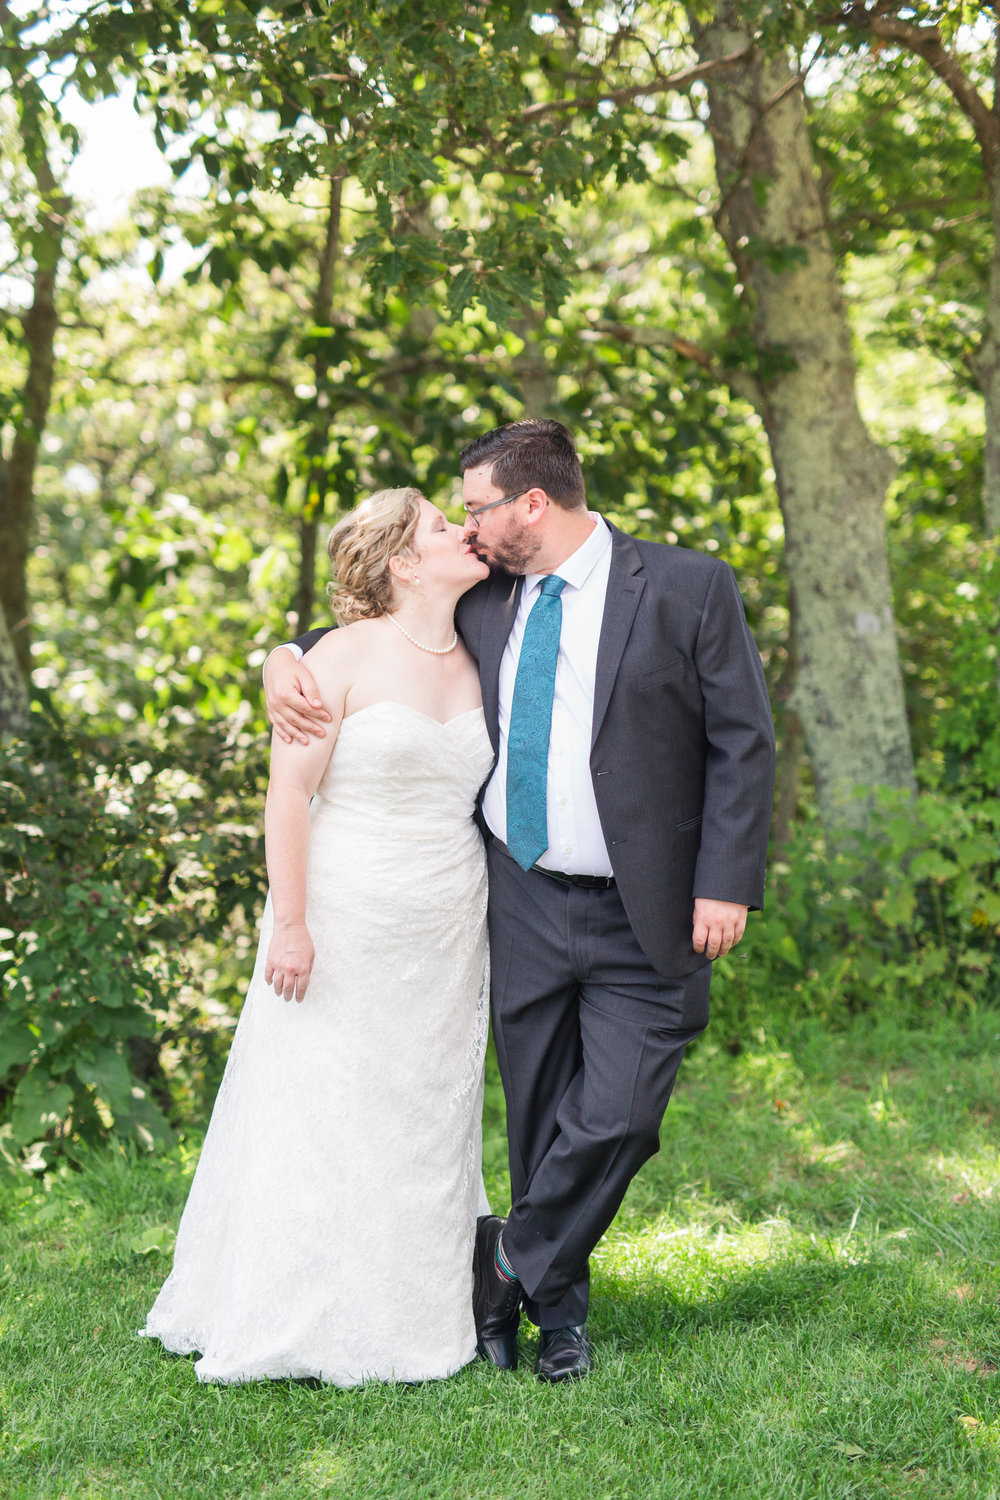 Write here…Lynchburg Virginia Wedding Photographer || Central Virginia Wedding Photos || Ashley Eiban Photography || www.ashleyeiban.com || Wintergreen Resort Wedding